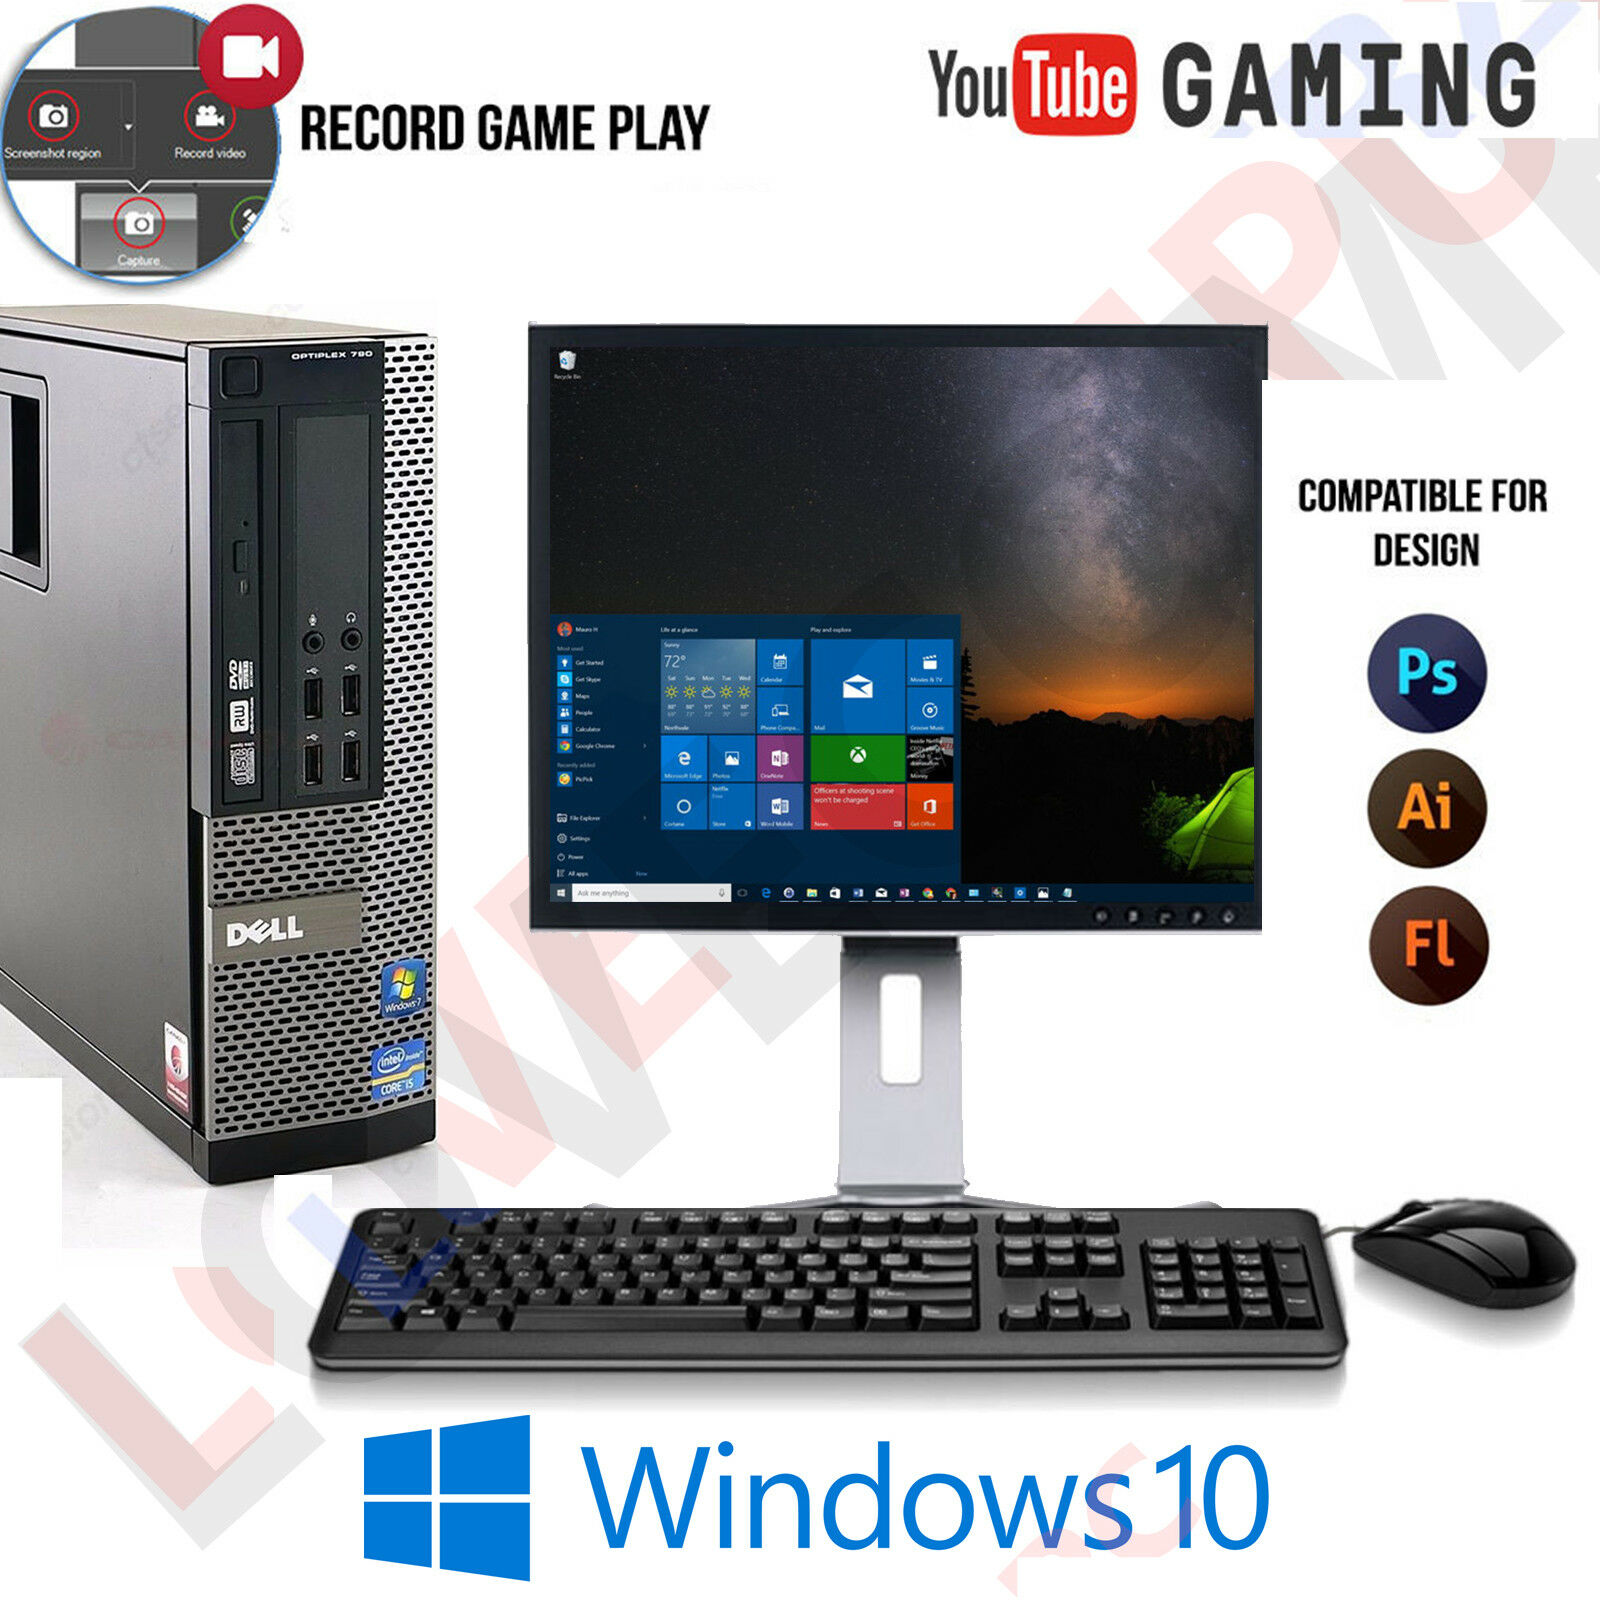 windows 10 gaming computer pc intel core i5 8gb ram 1tb. Black Bedroom Furniture Sets. Home Design Ideas